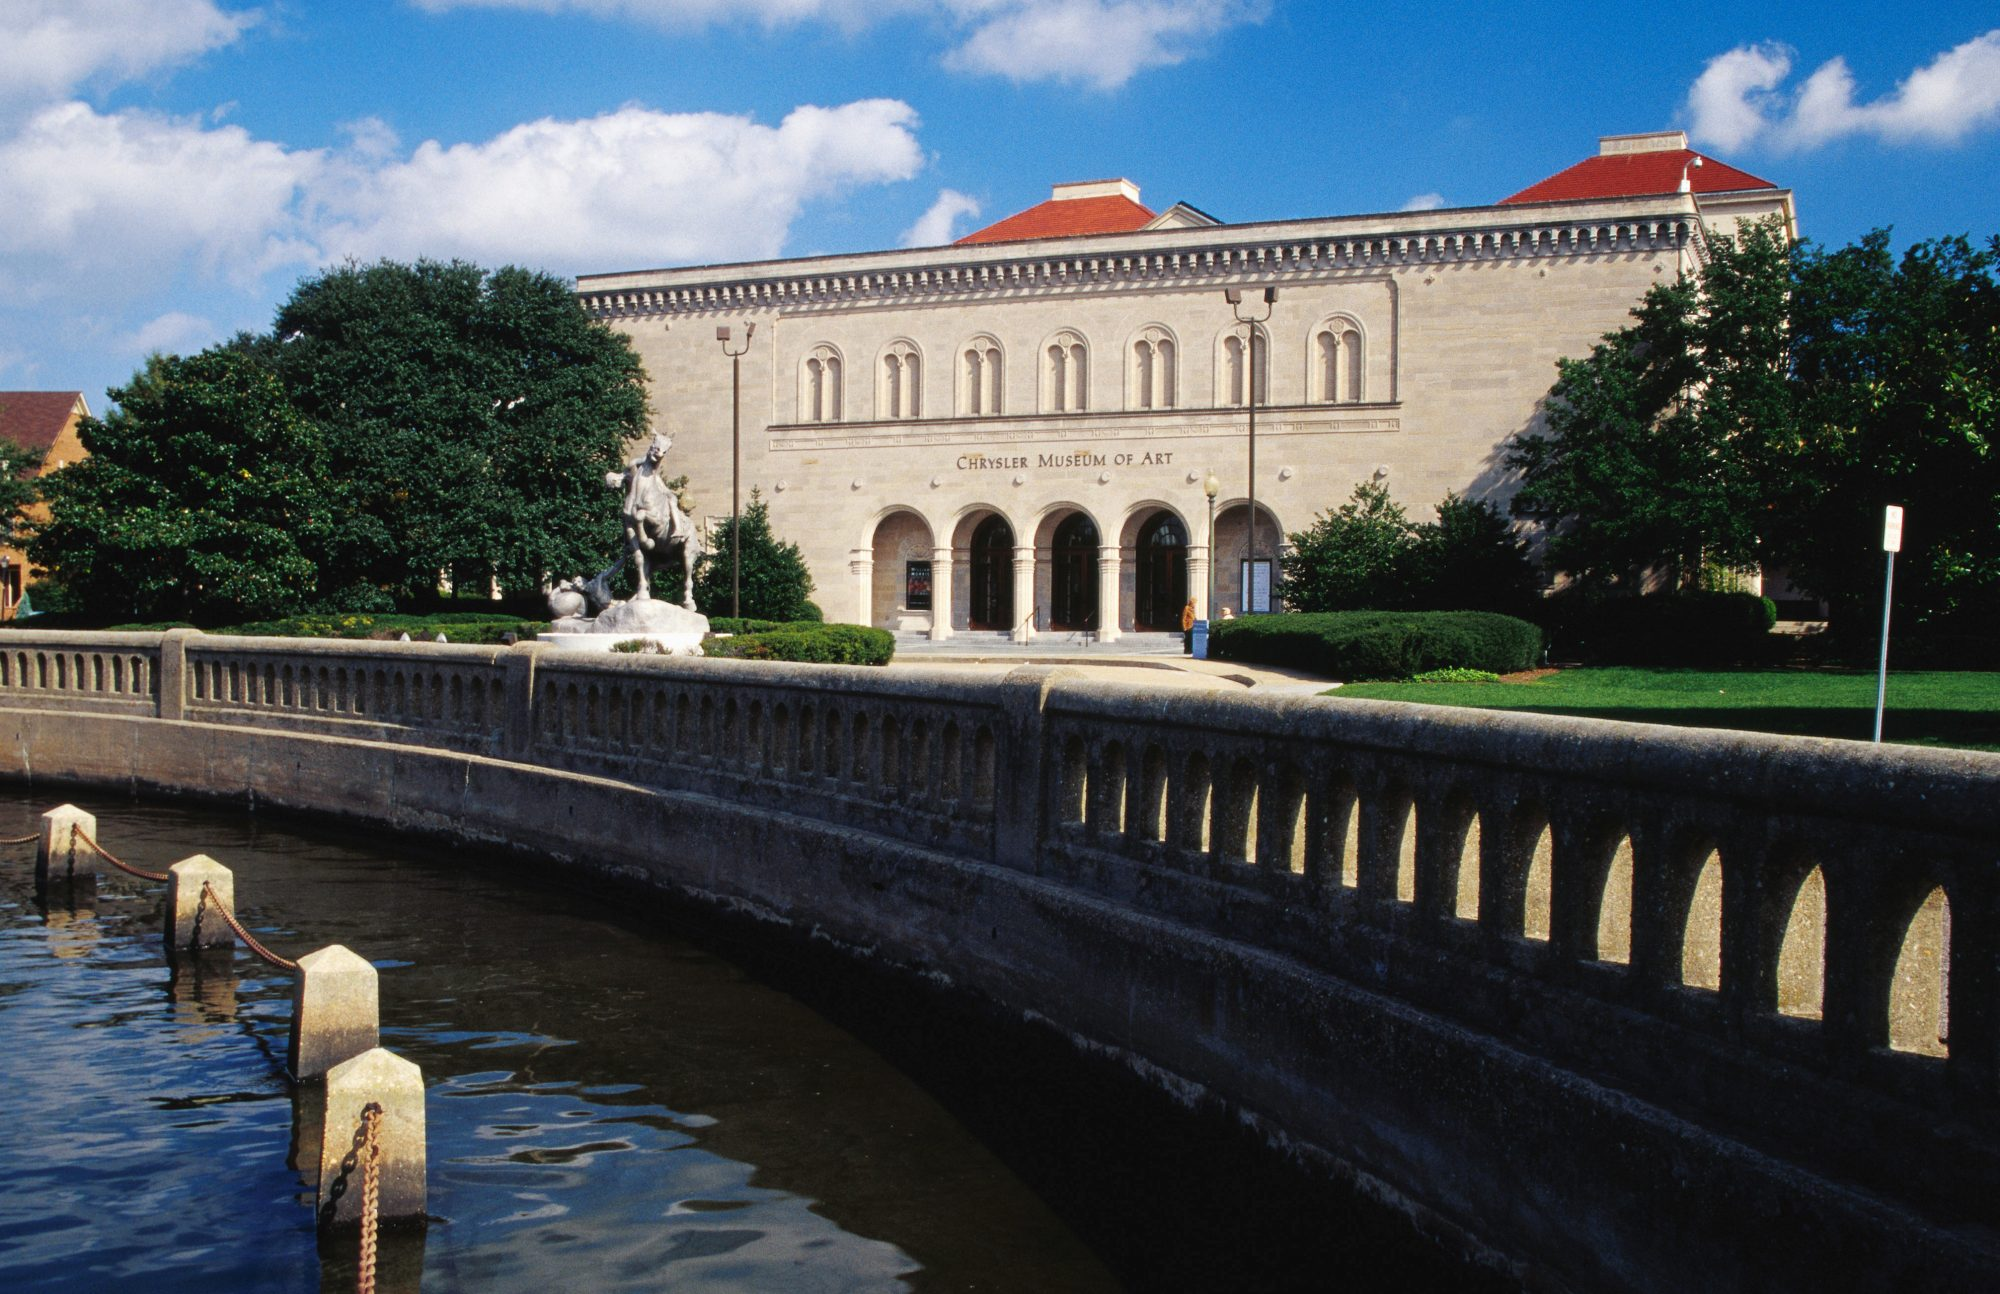 Chrysler Museum of Art (Norfolk, Virginia)